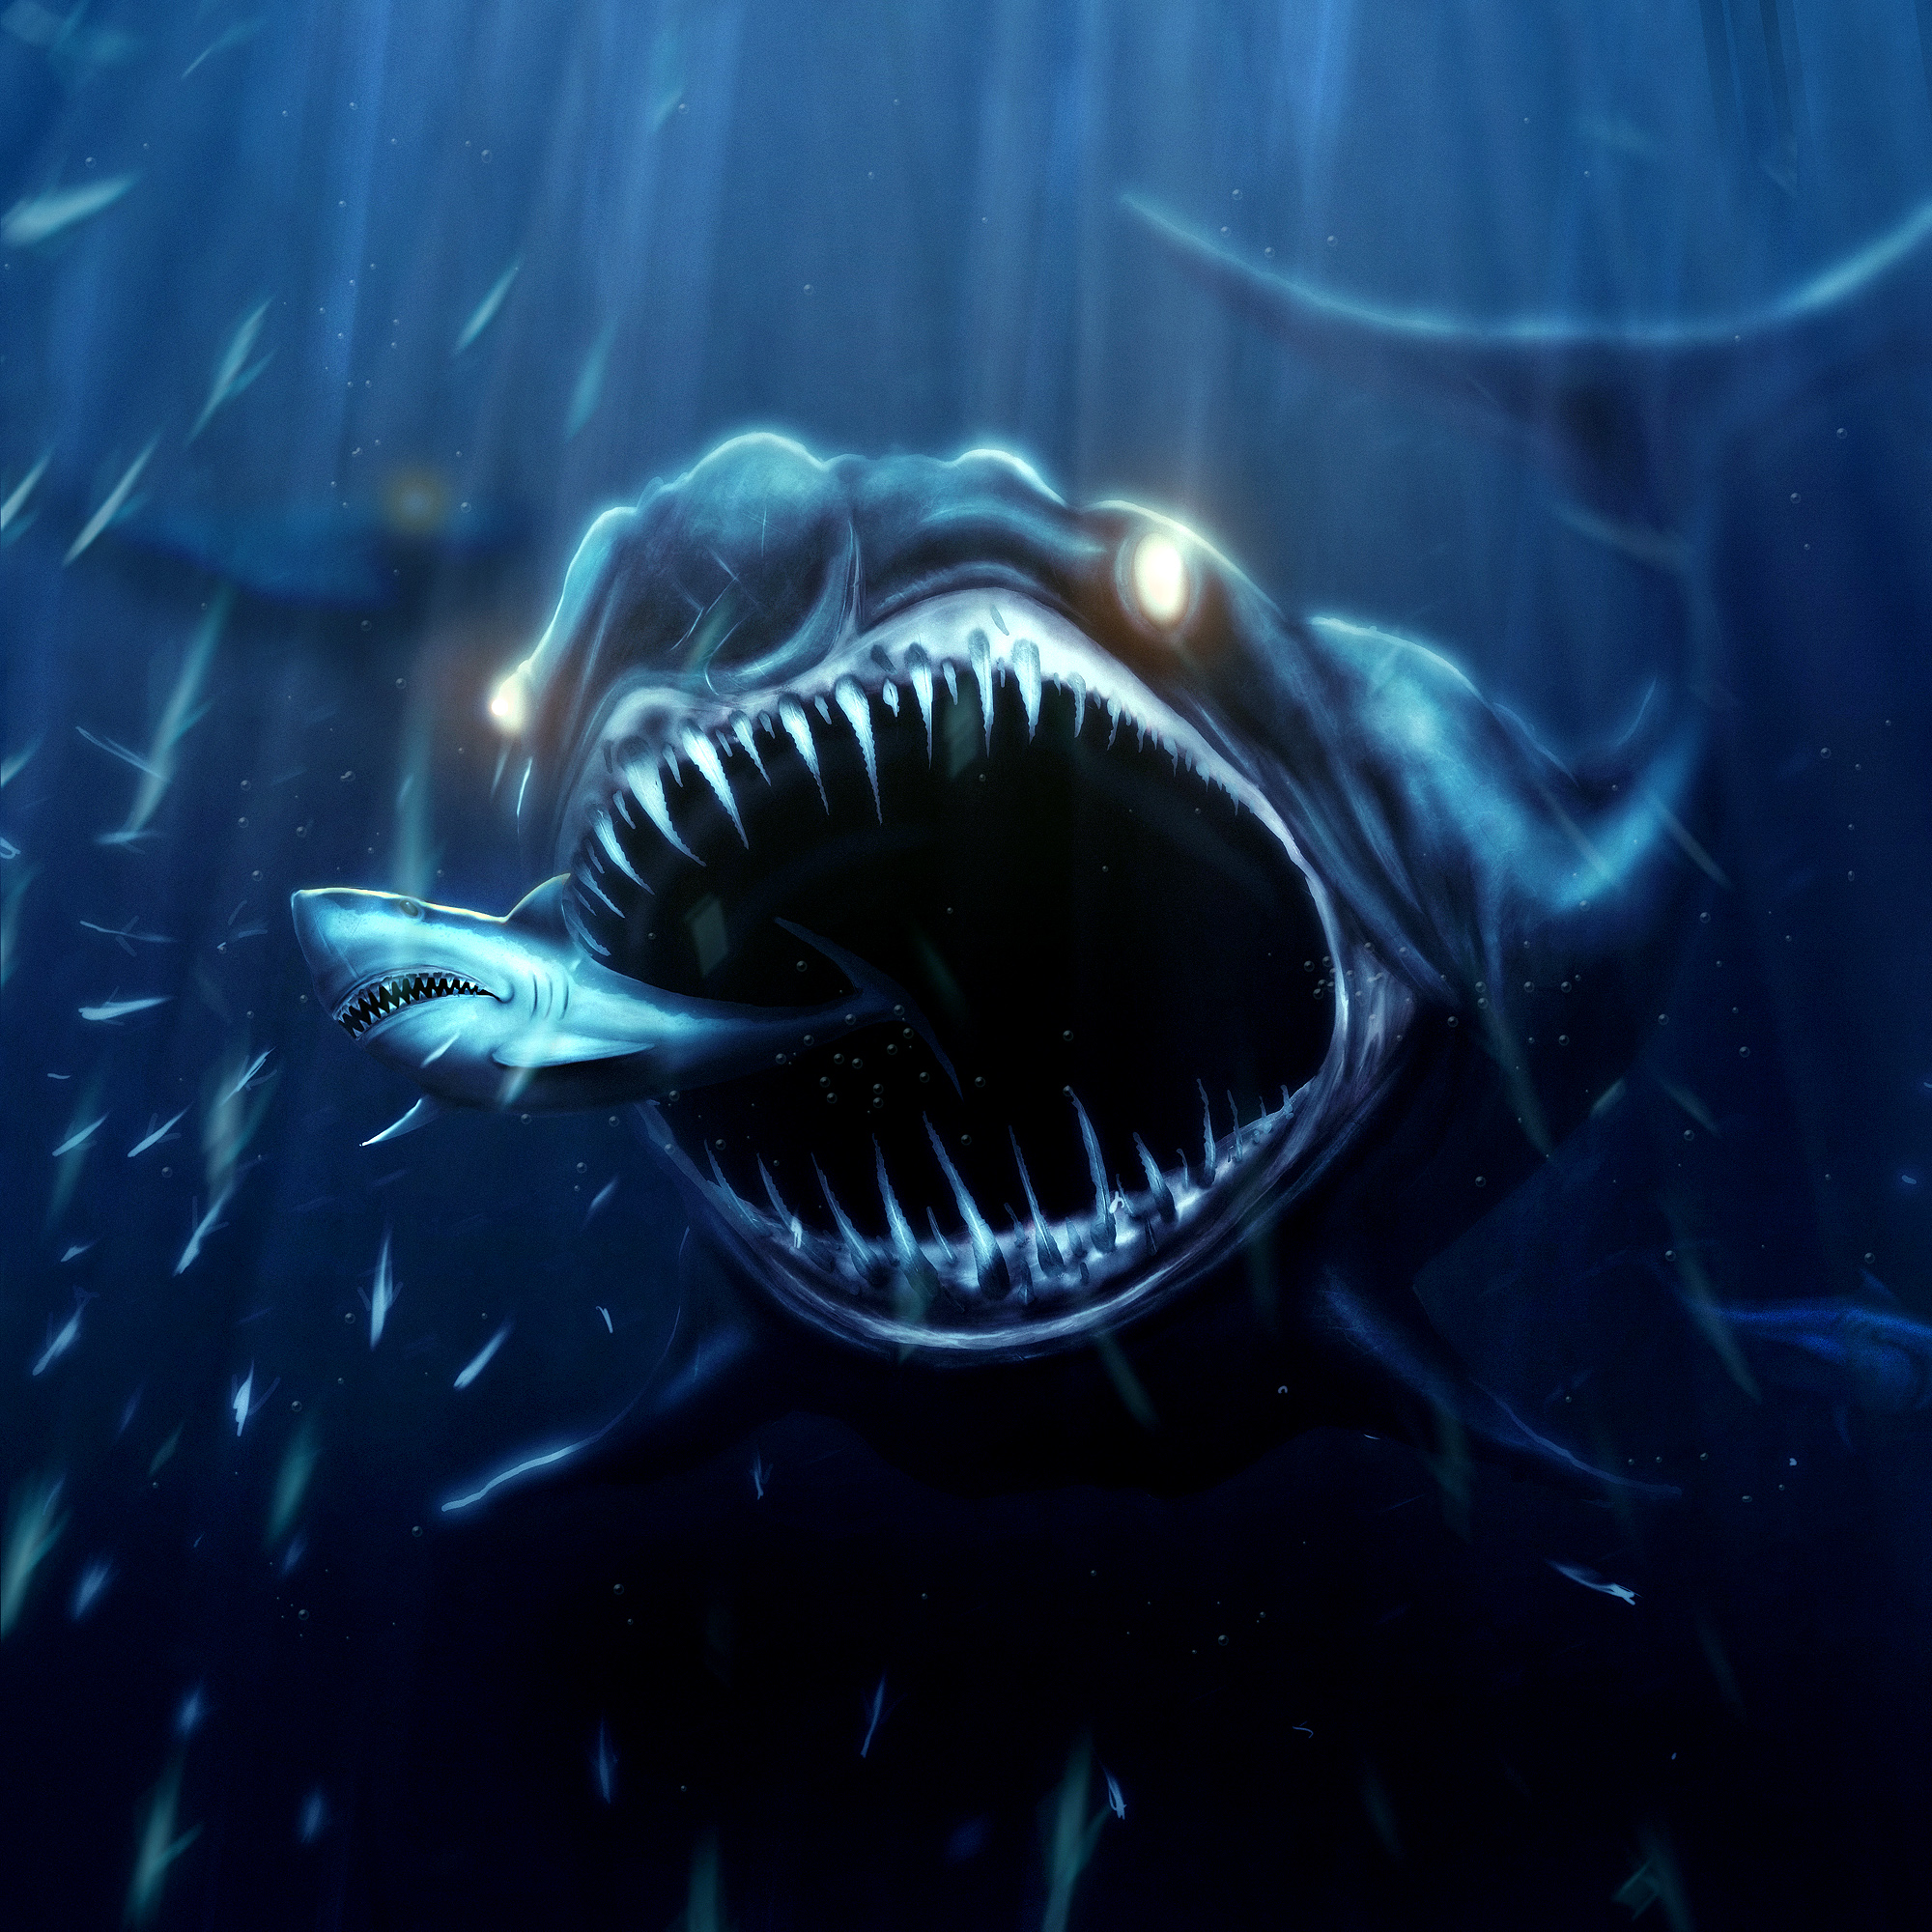 Shark: The meaning of the dream in which you see 'Shark'